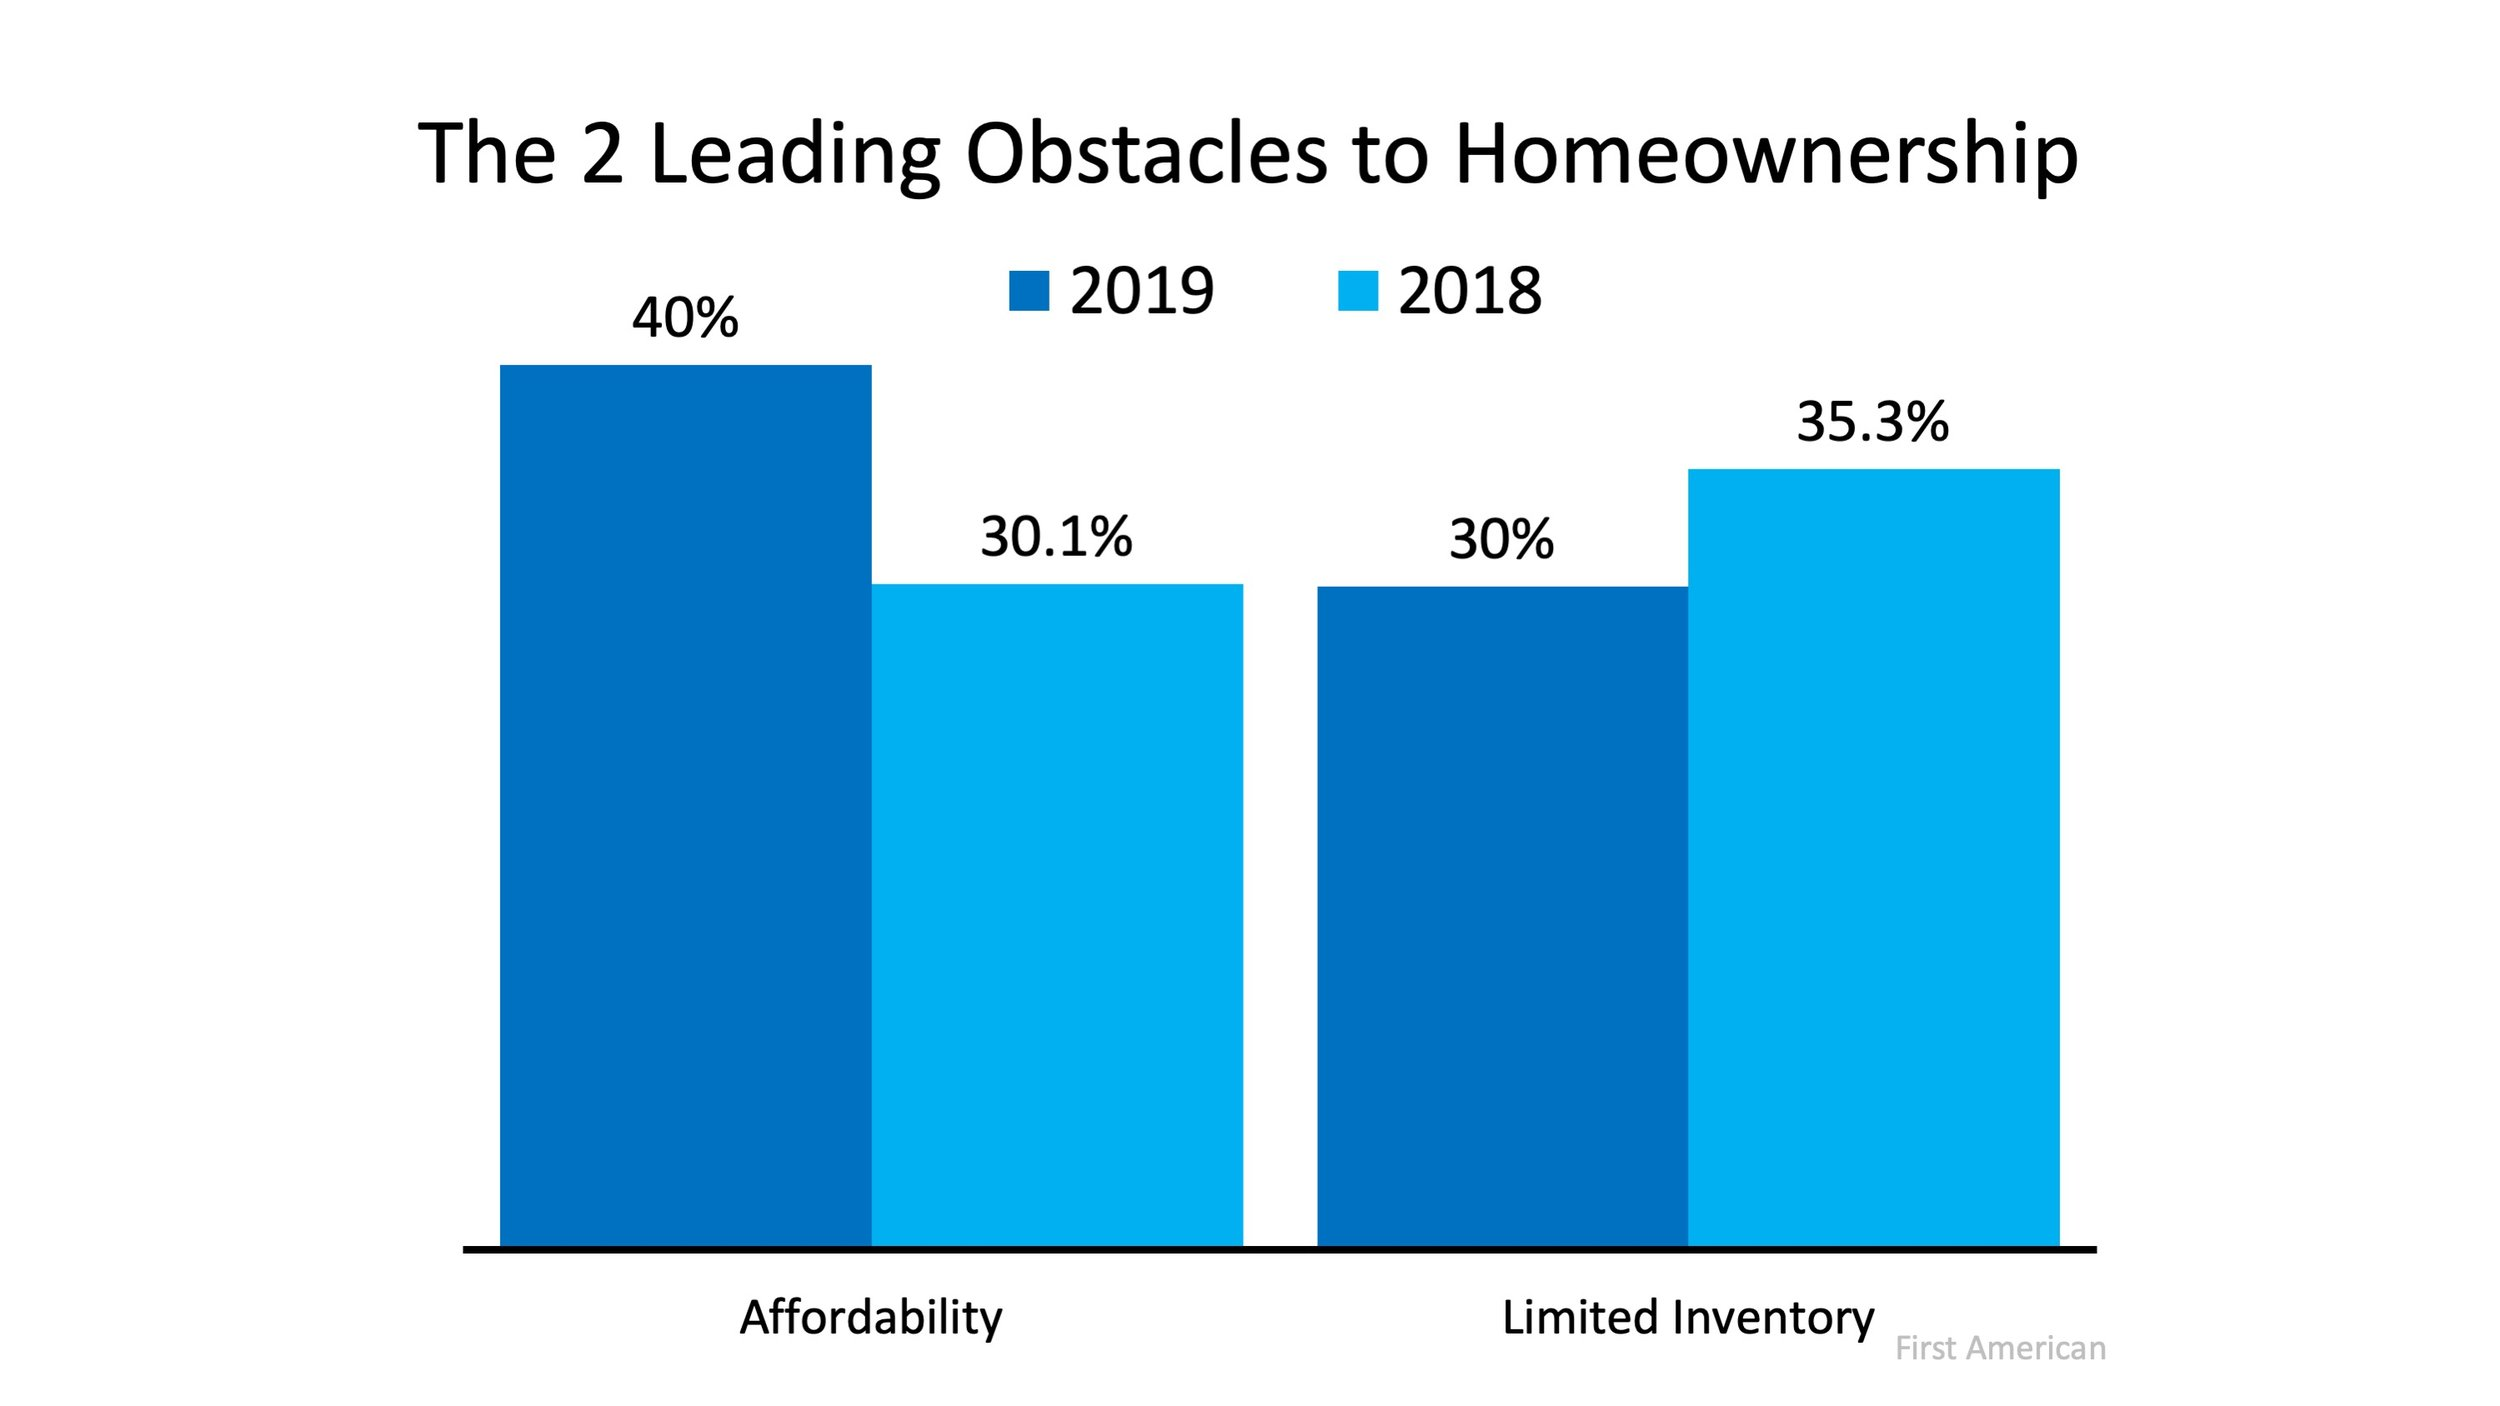 The 2 Leading Obstacles to Homeownership